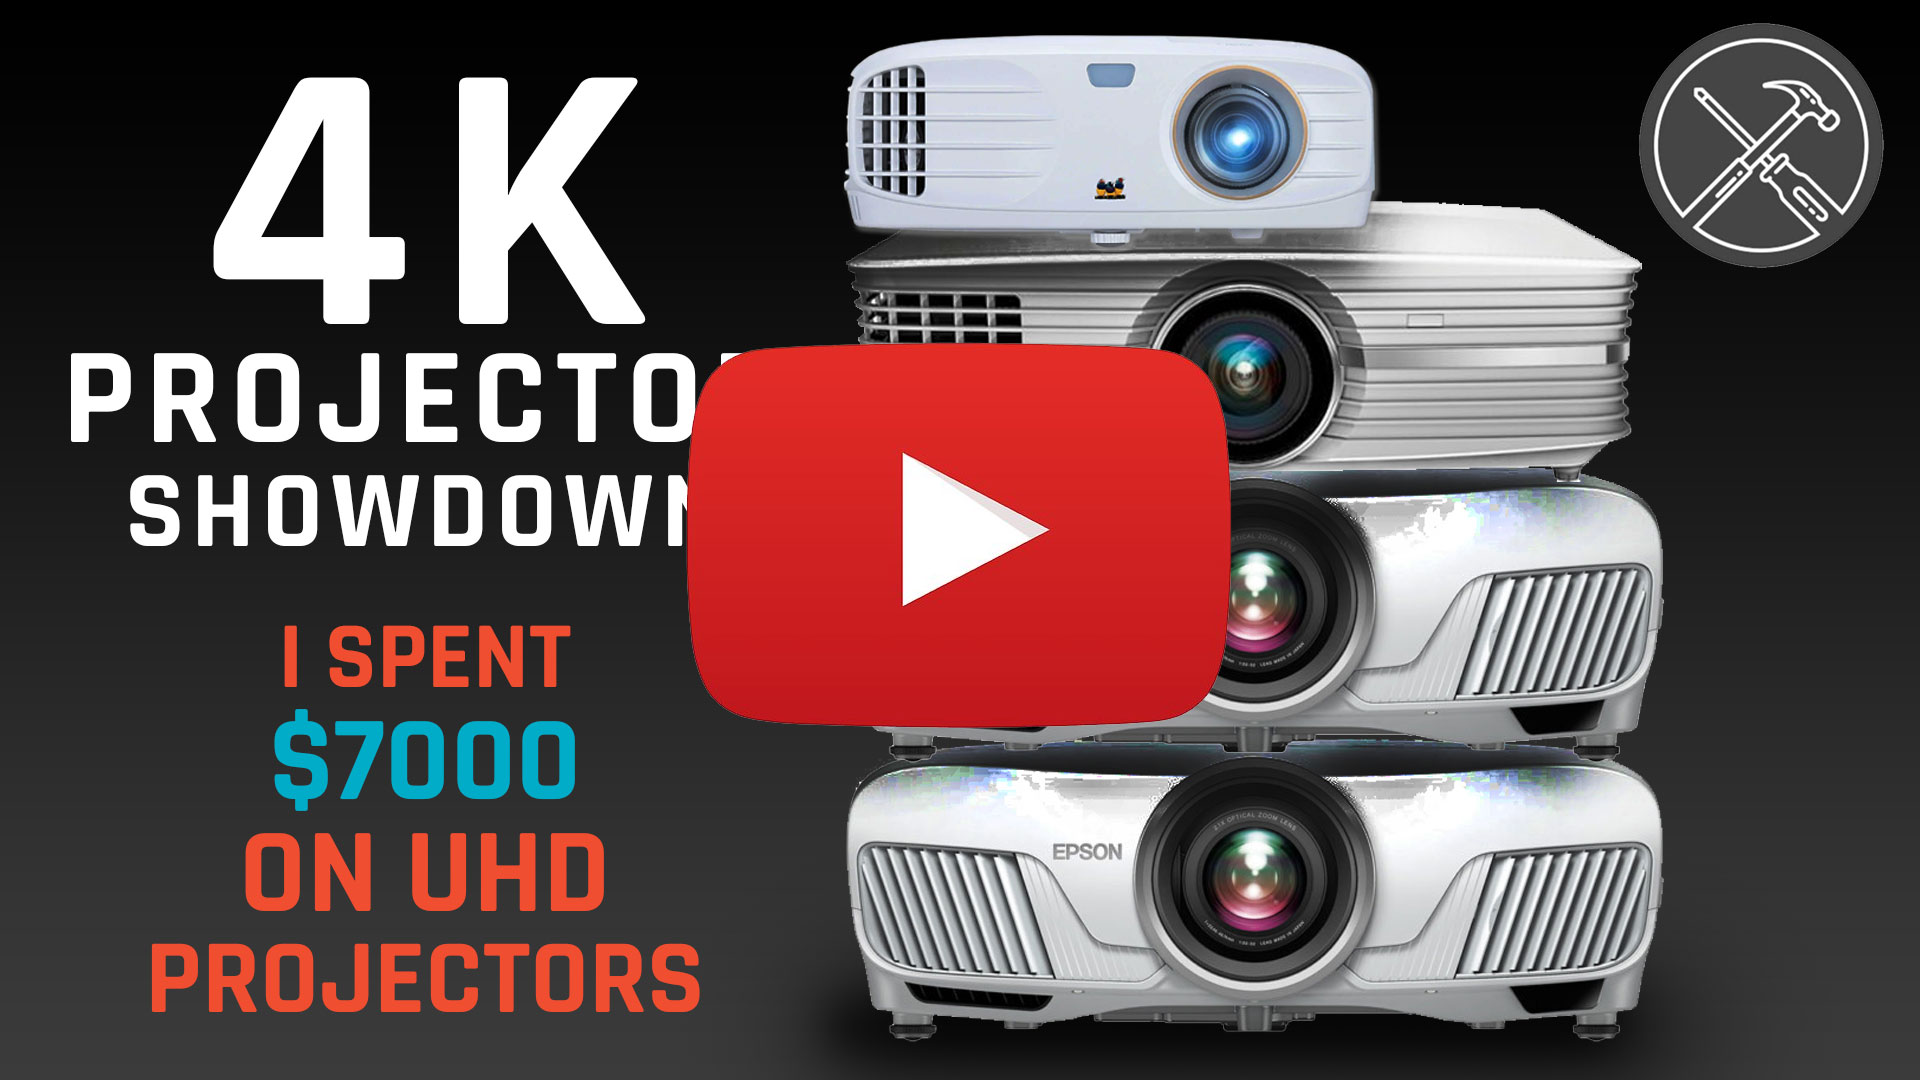 4K Projector Showdown – I Spent $7,000 Comparing 4 UHD Projectors